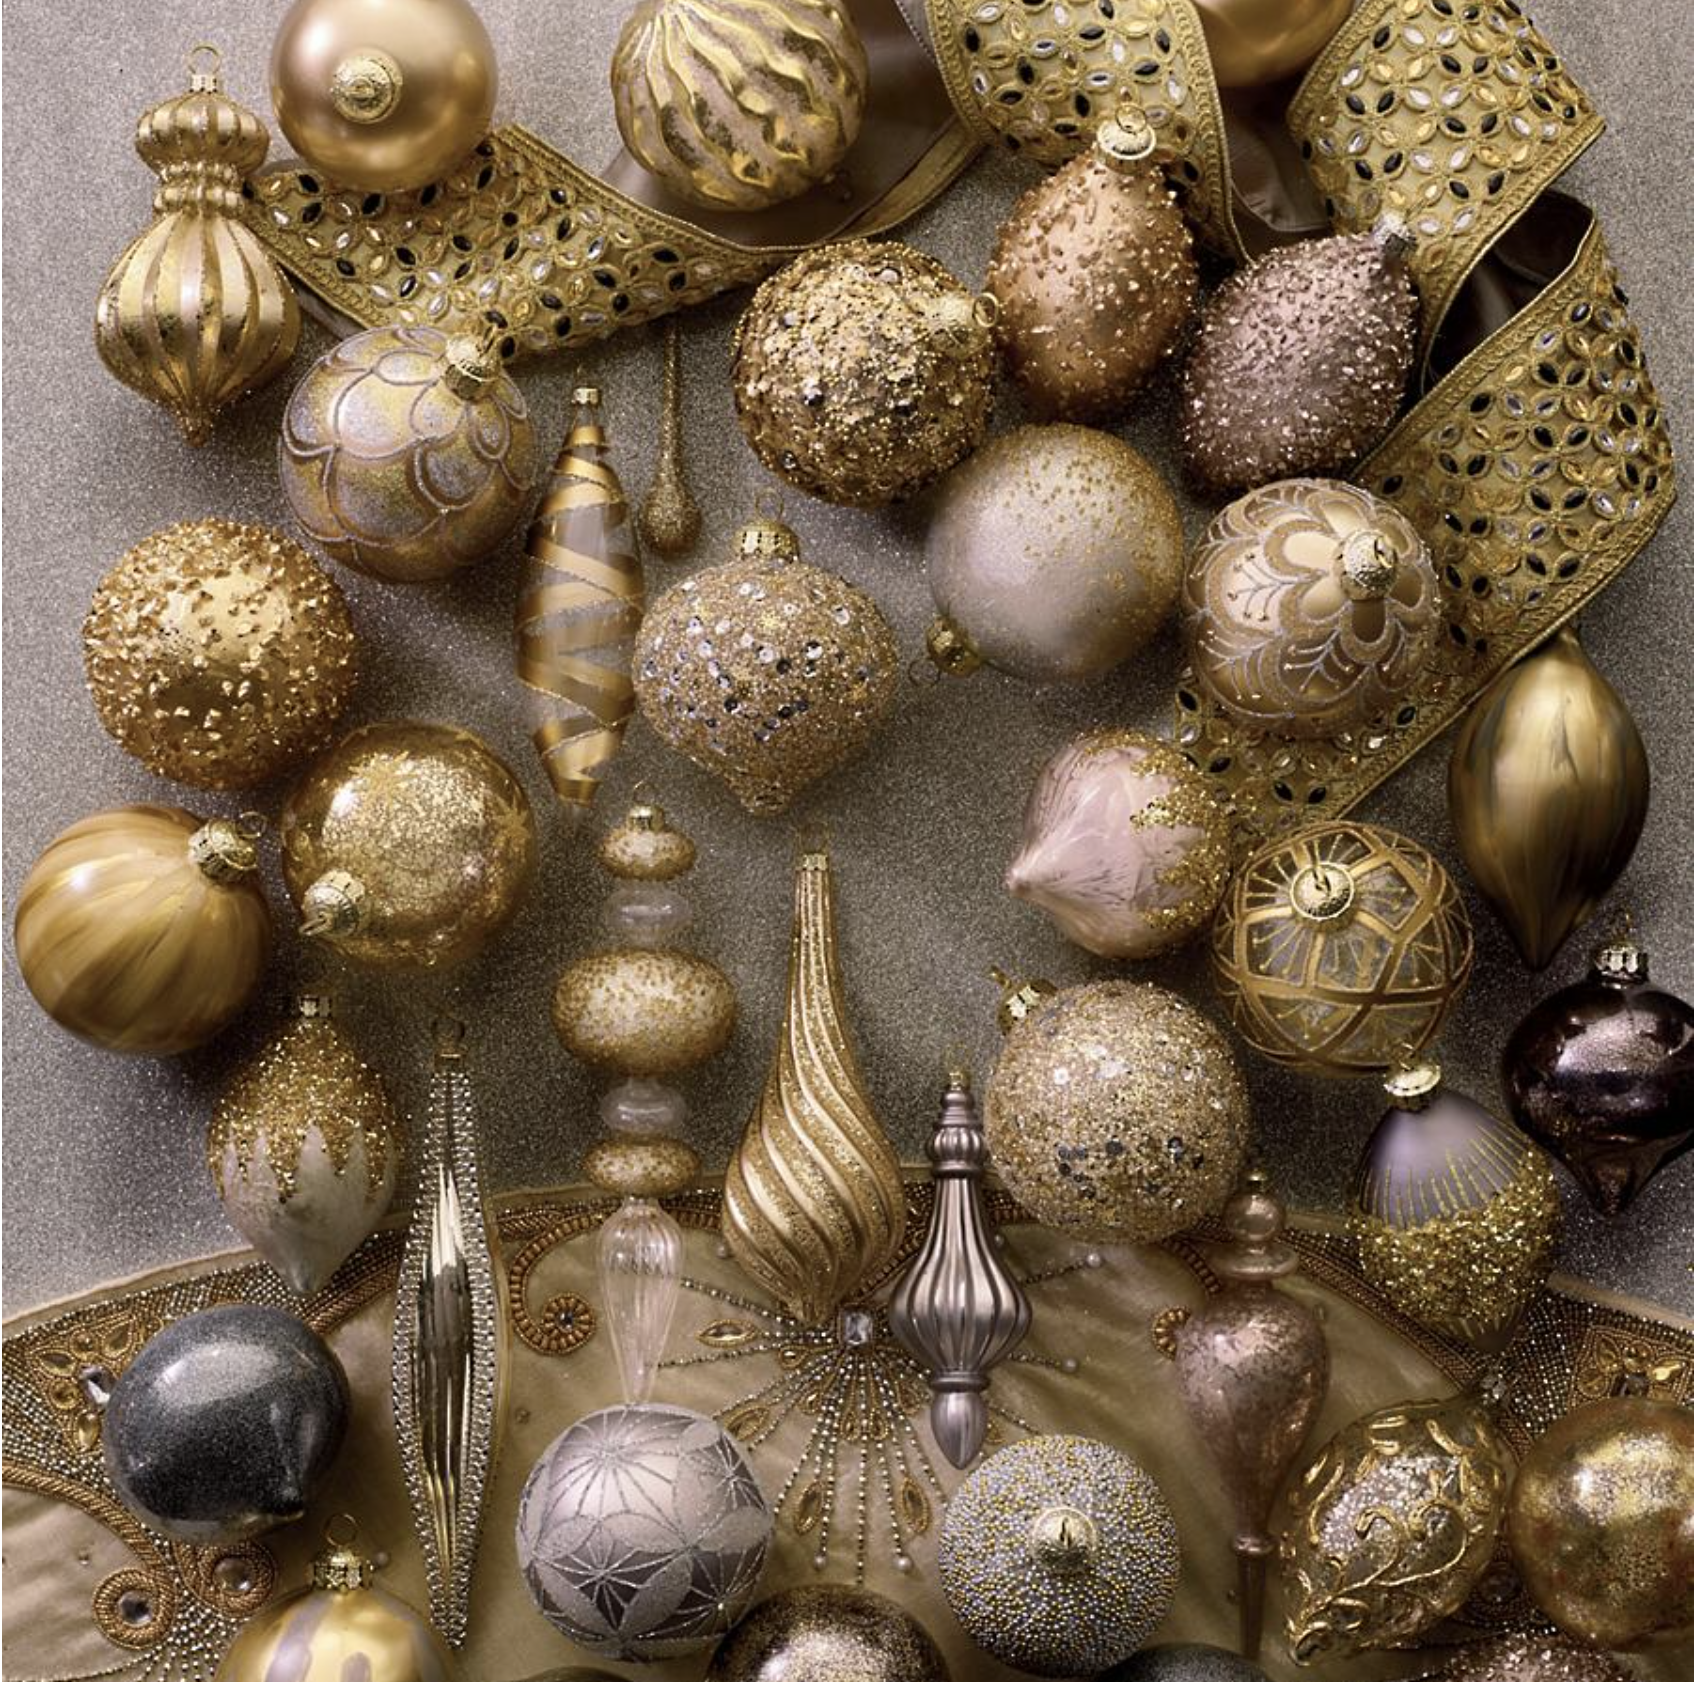 Gold Ornament Collection